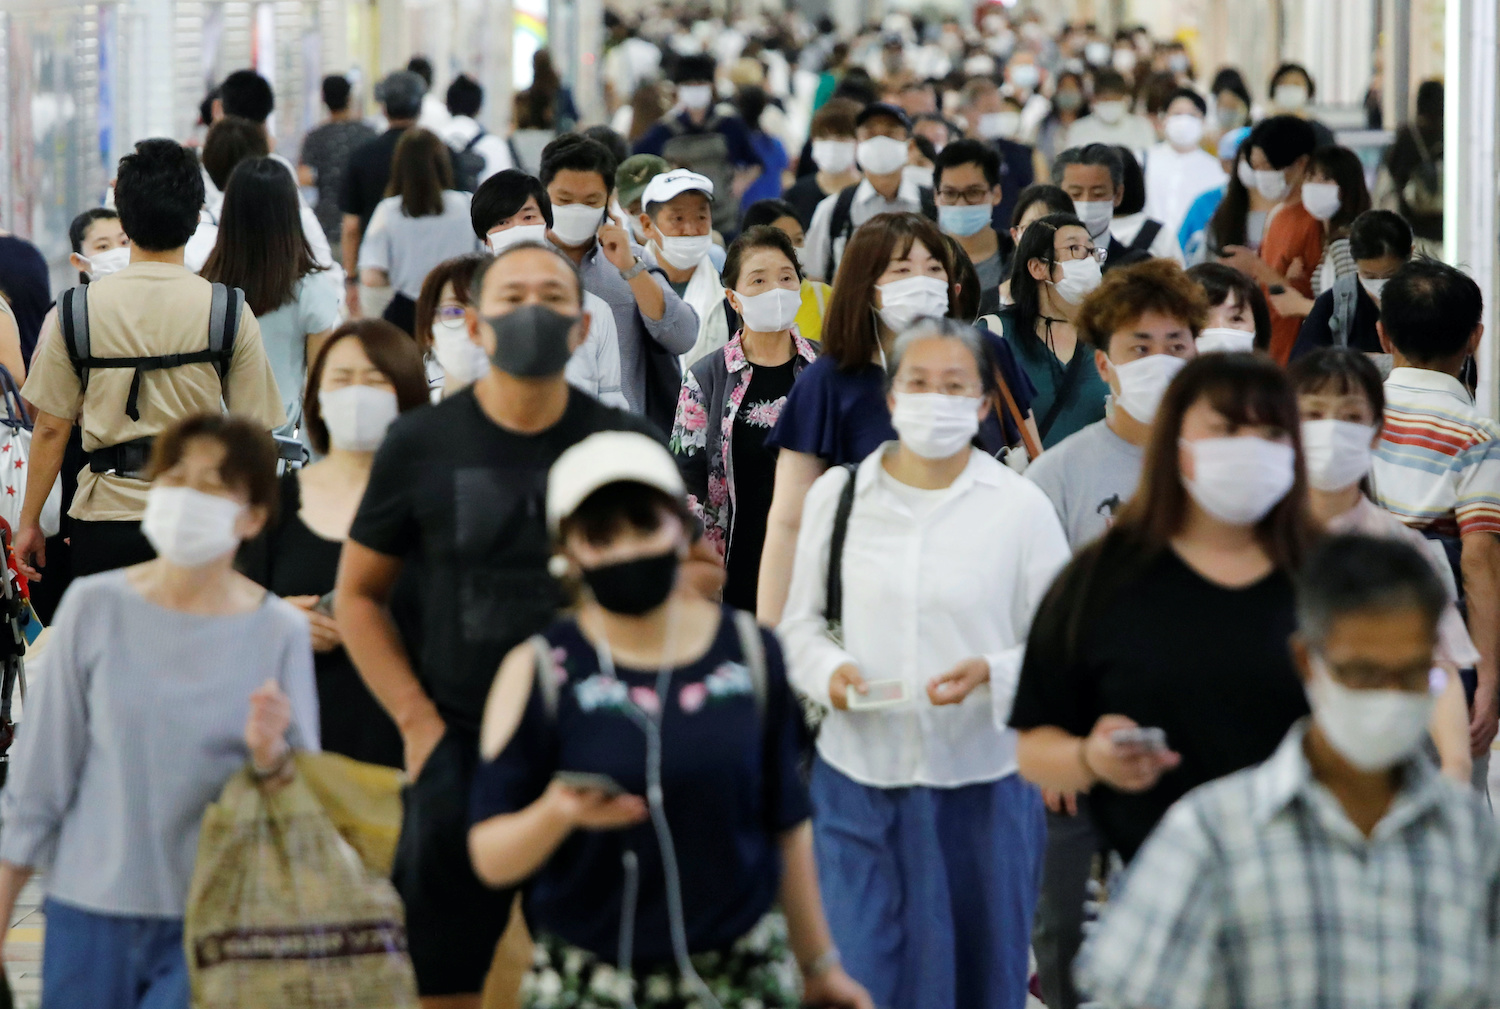 Commuters walk through a train station in Tokyo. (Reuters Photo)